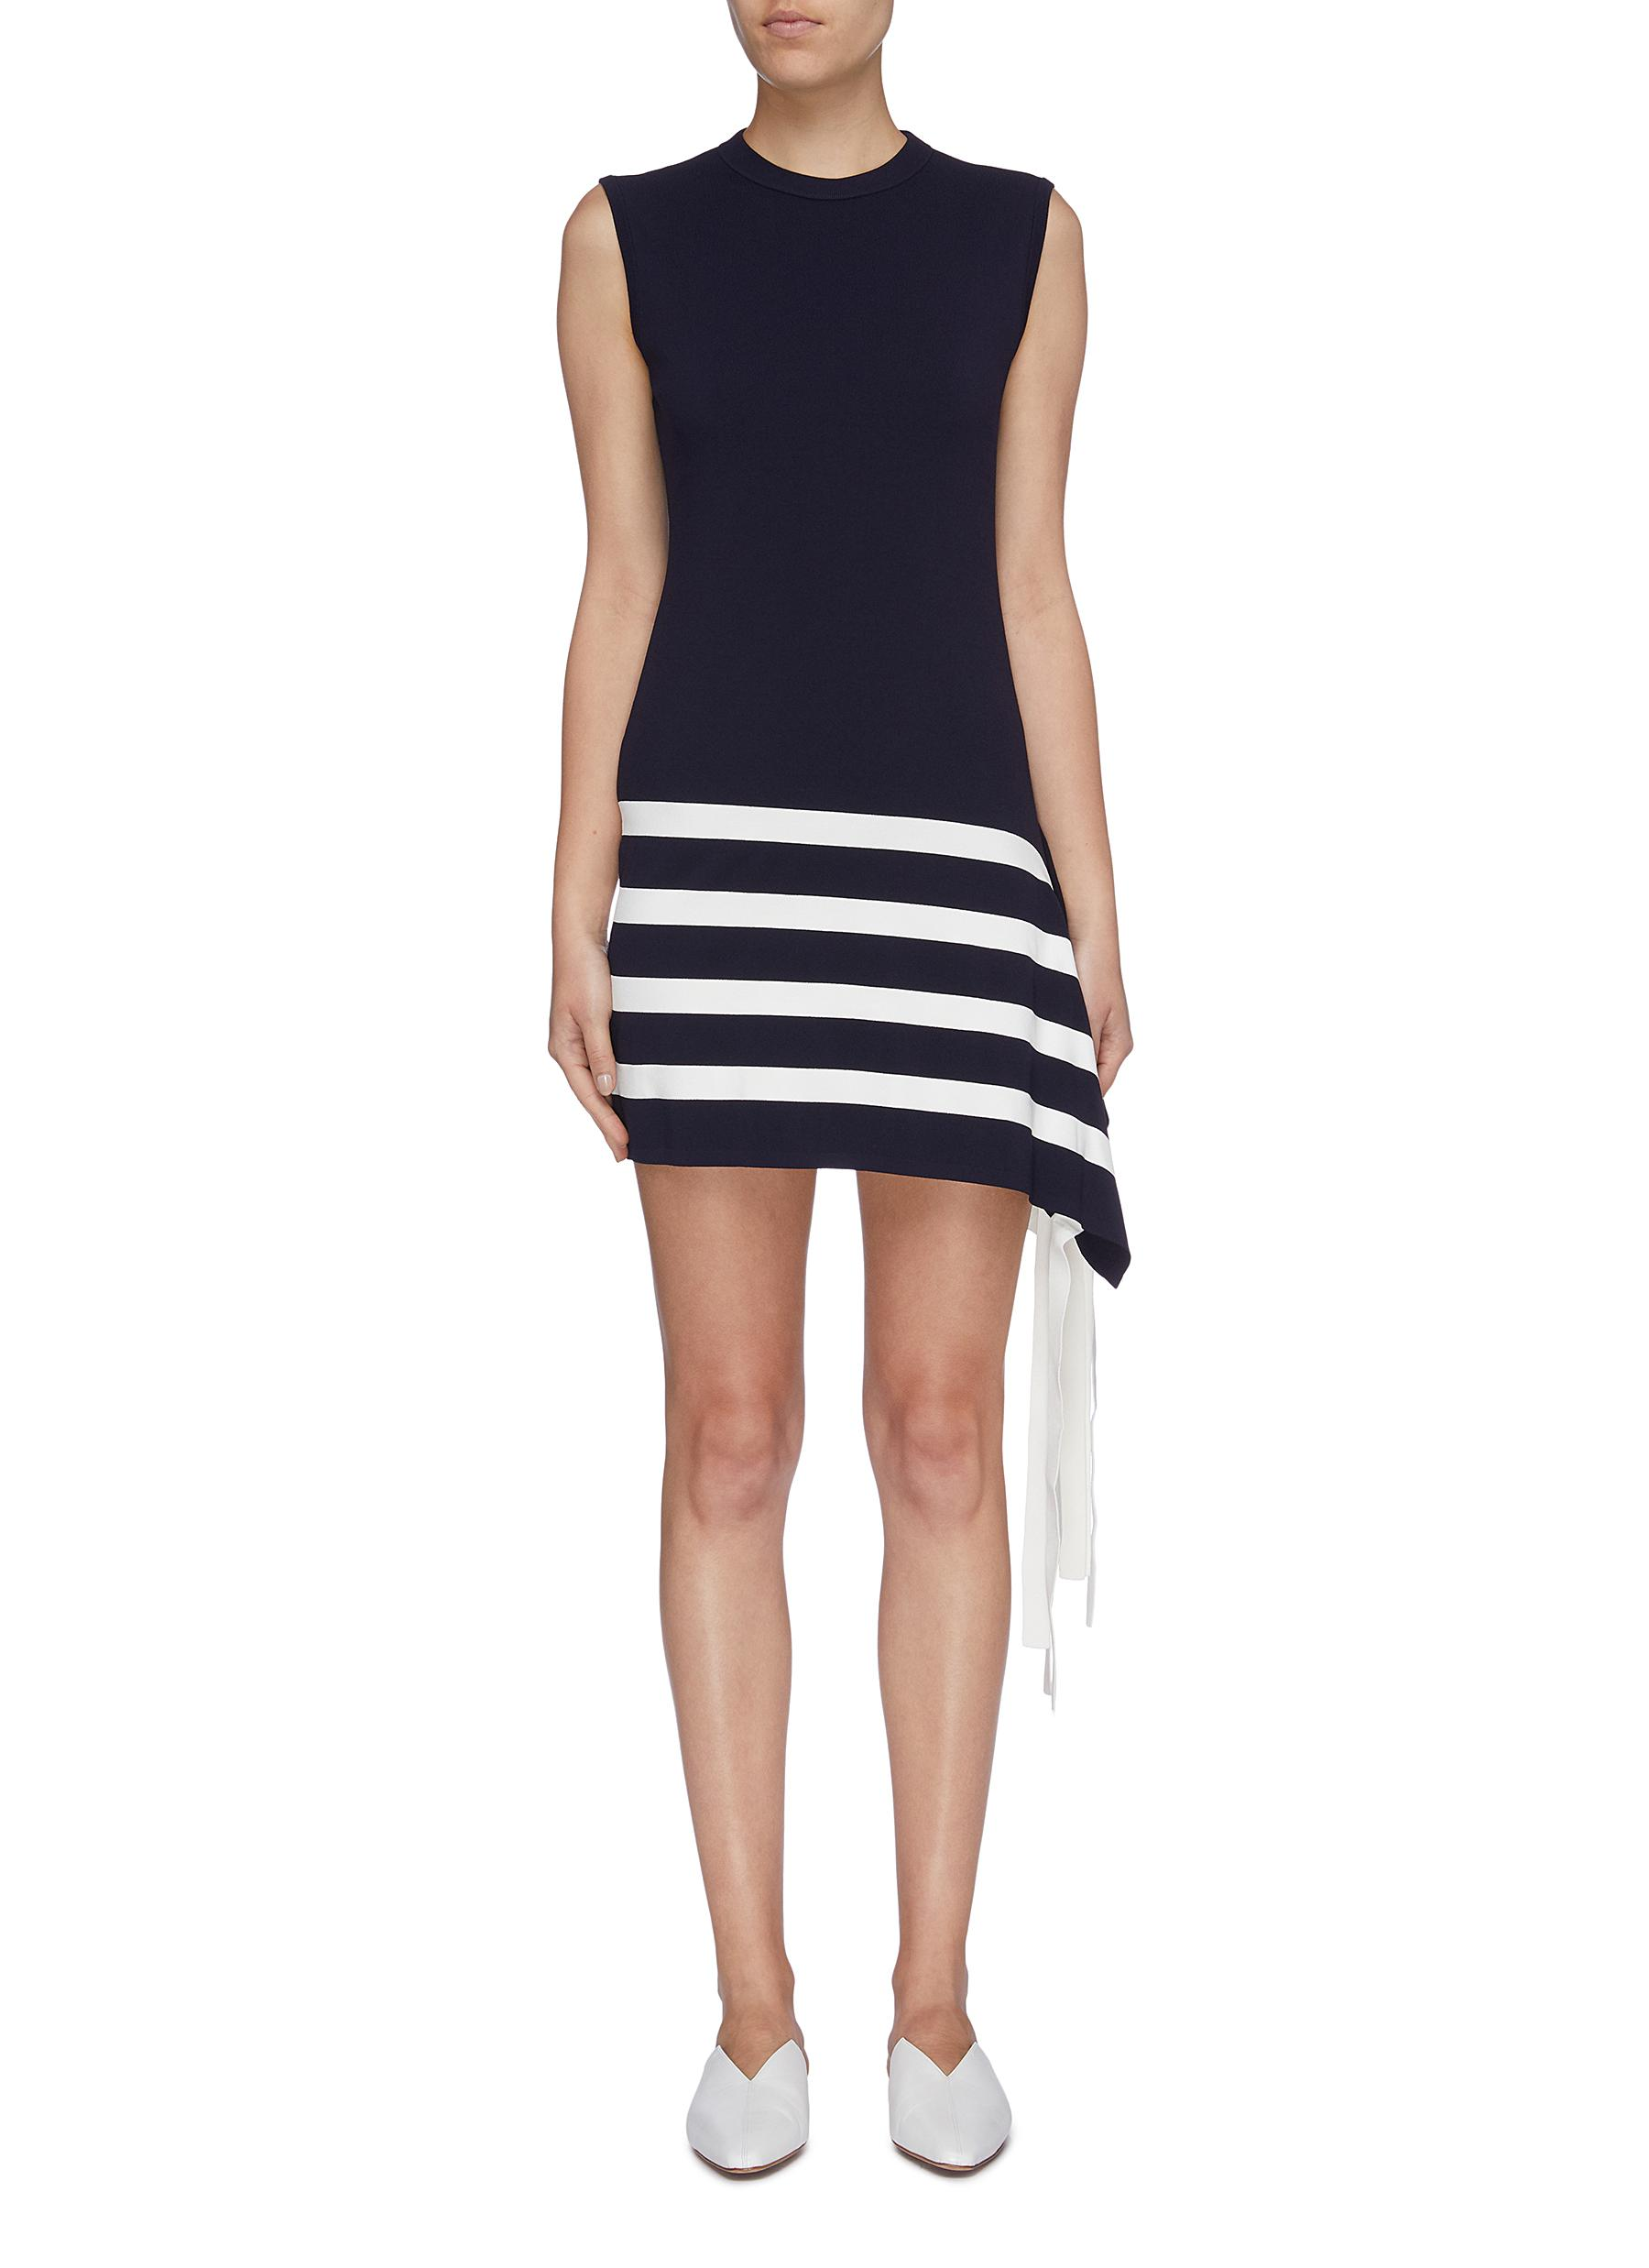 Fringe stripe sleeveless shift dress by Portspure